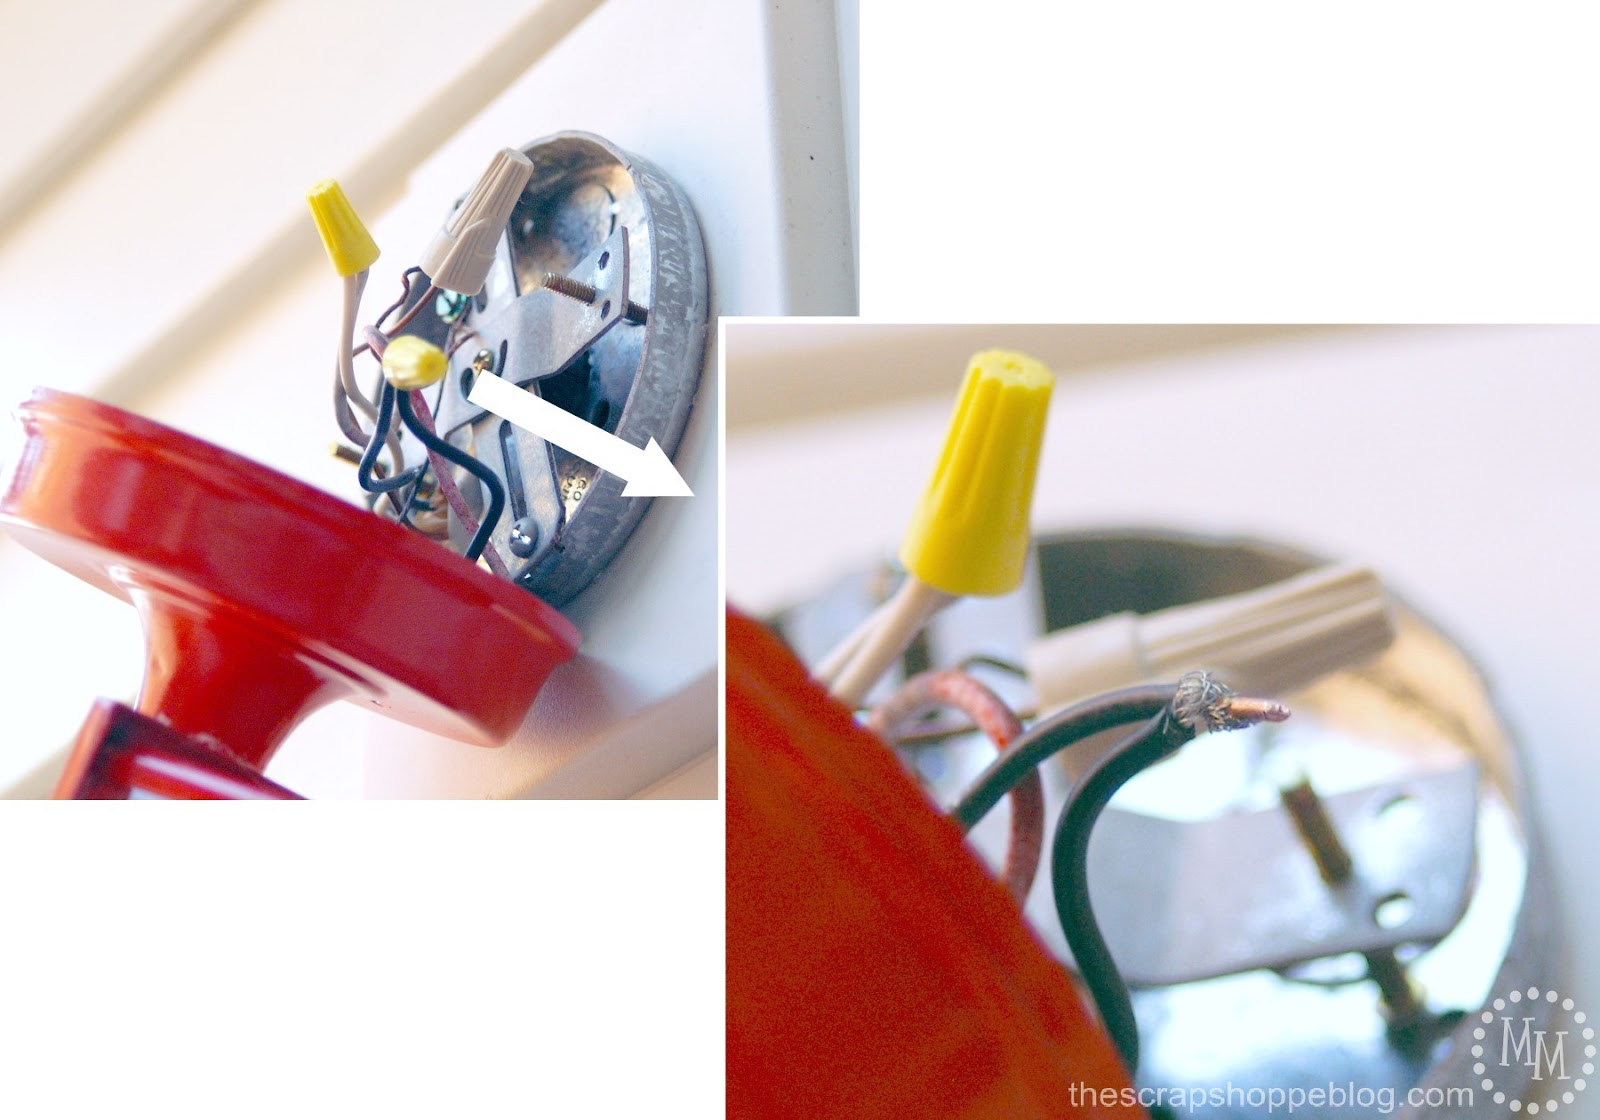 Wiring A Light Fixture To A Dimmer Switch Along With 6 Light Candle